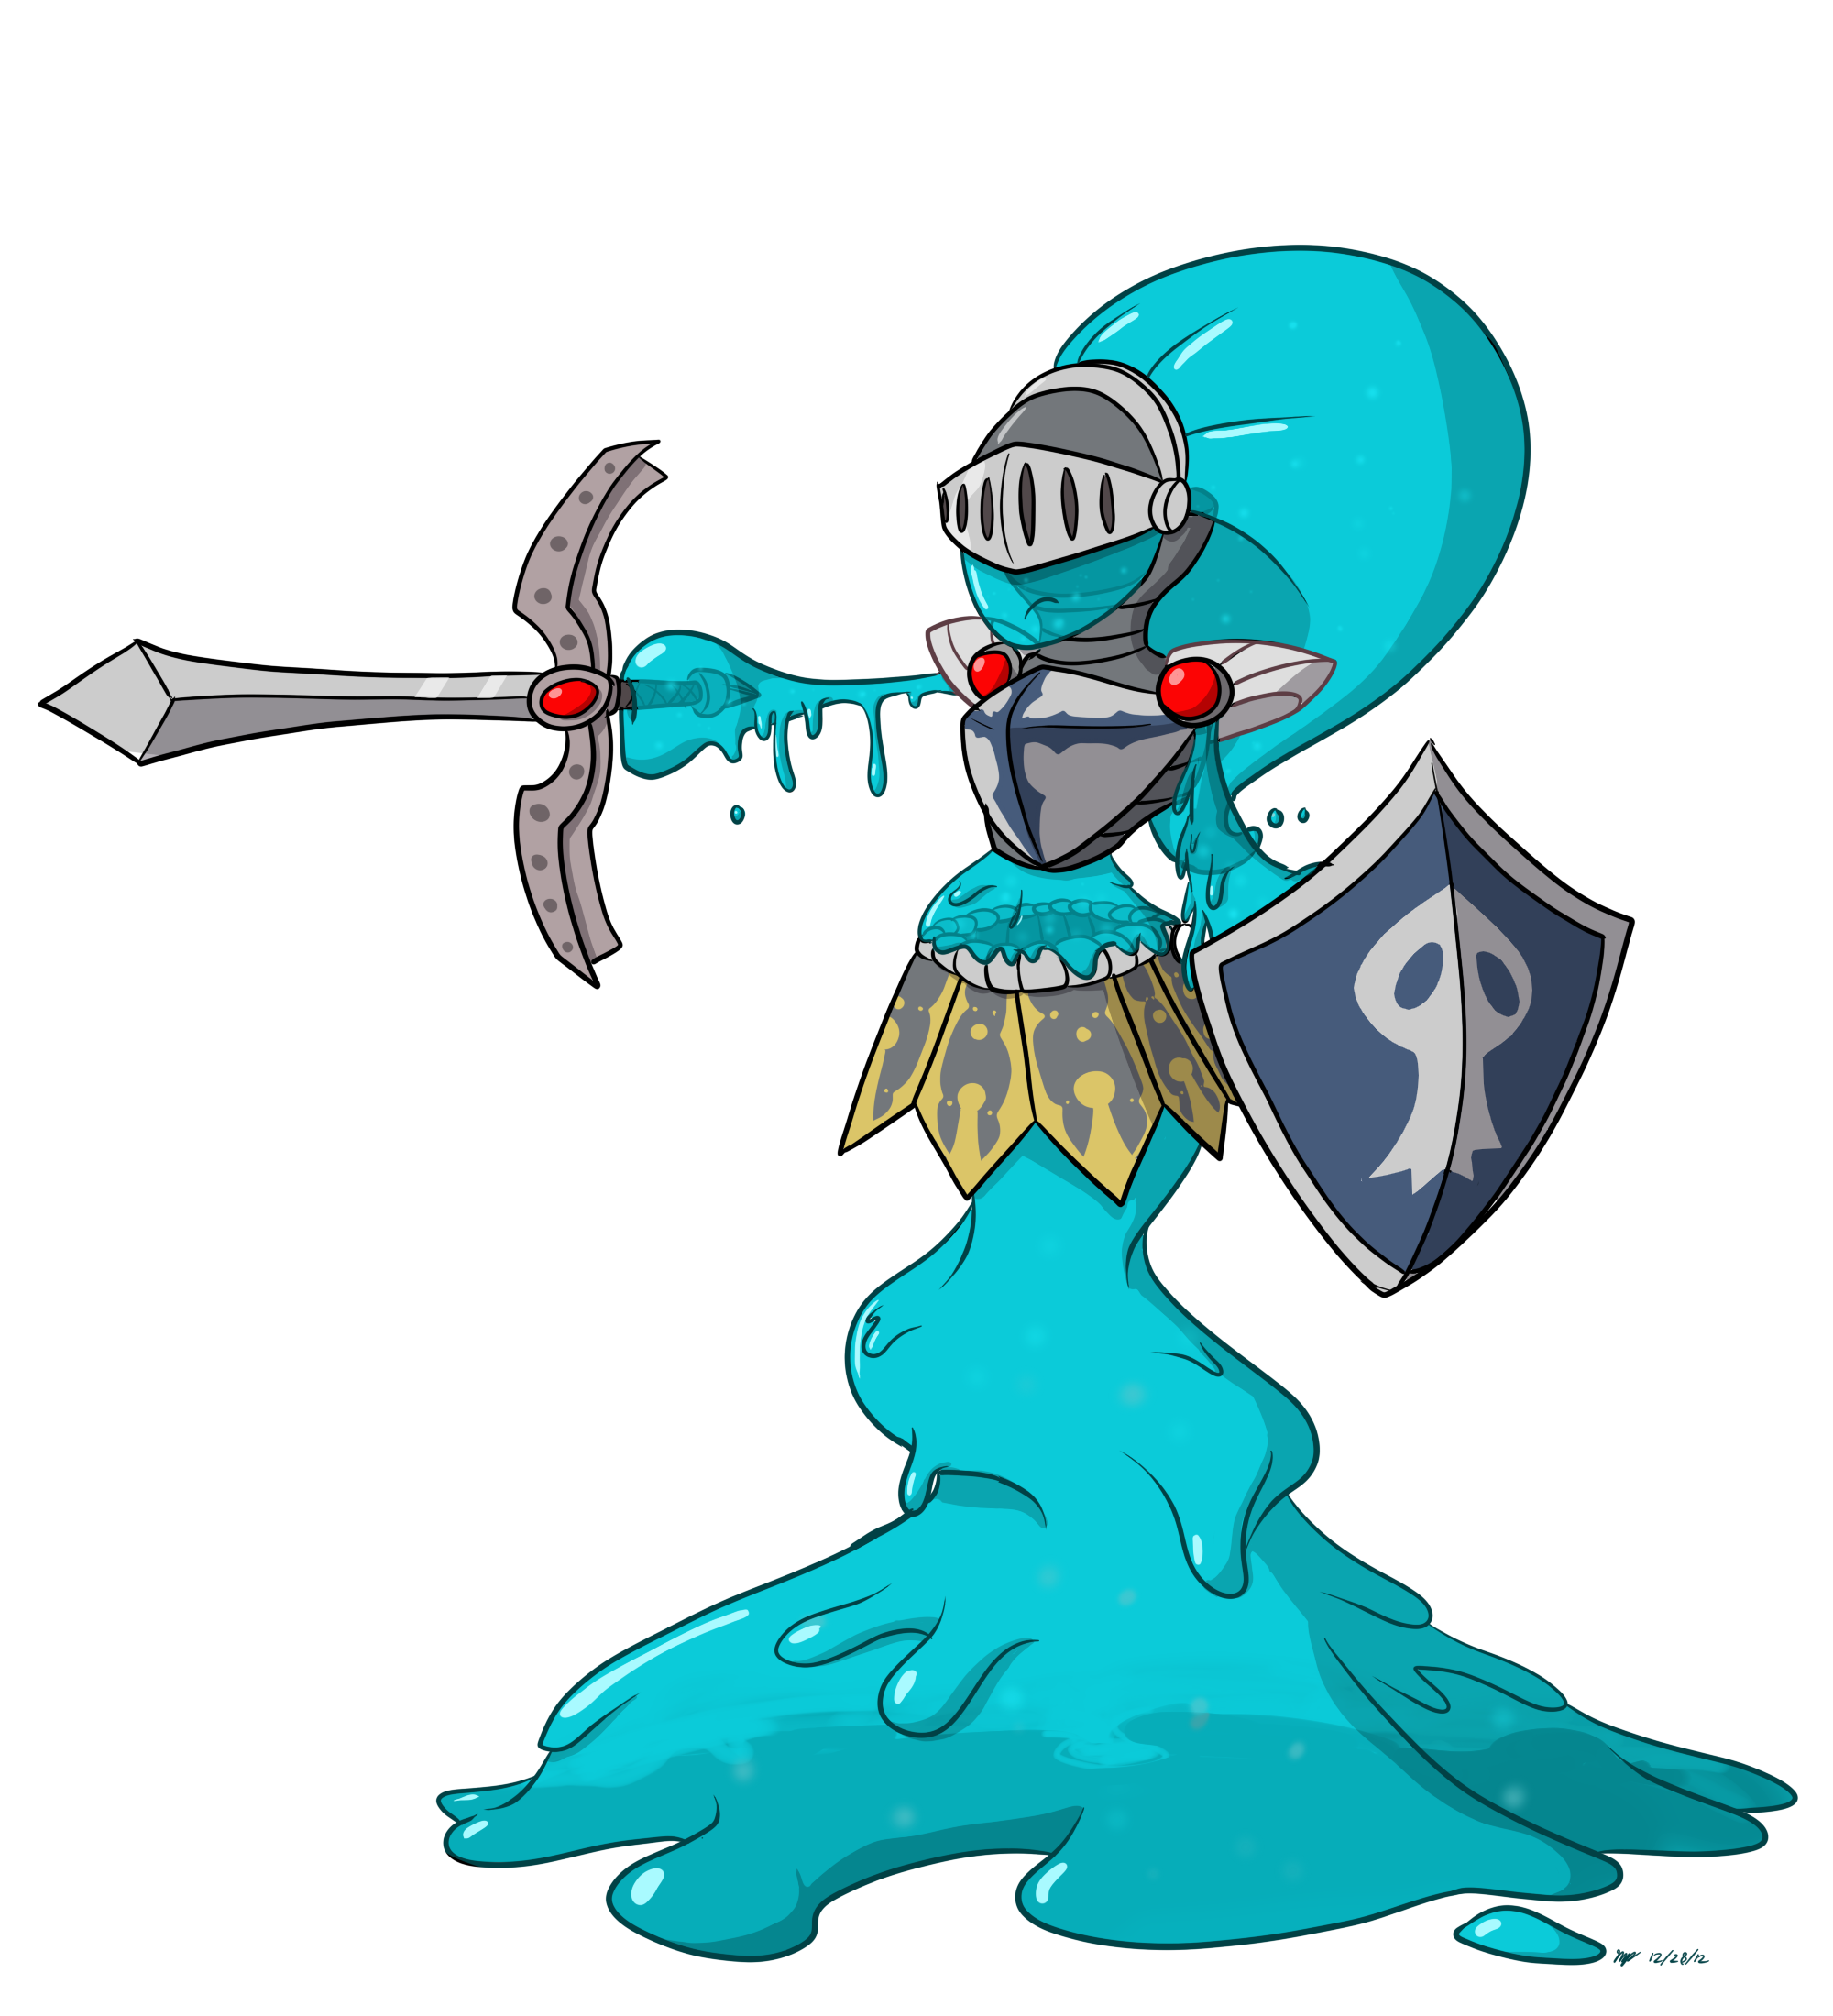 Knight clipart girl knight. Goo everybody by cogmoses